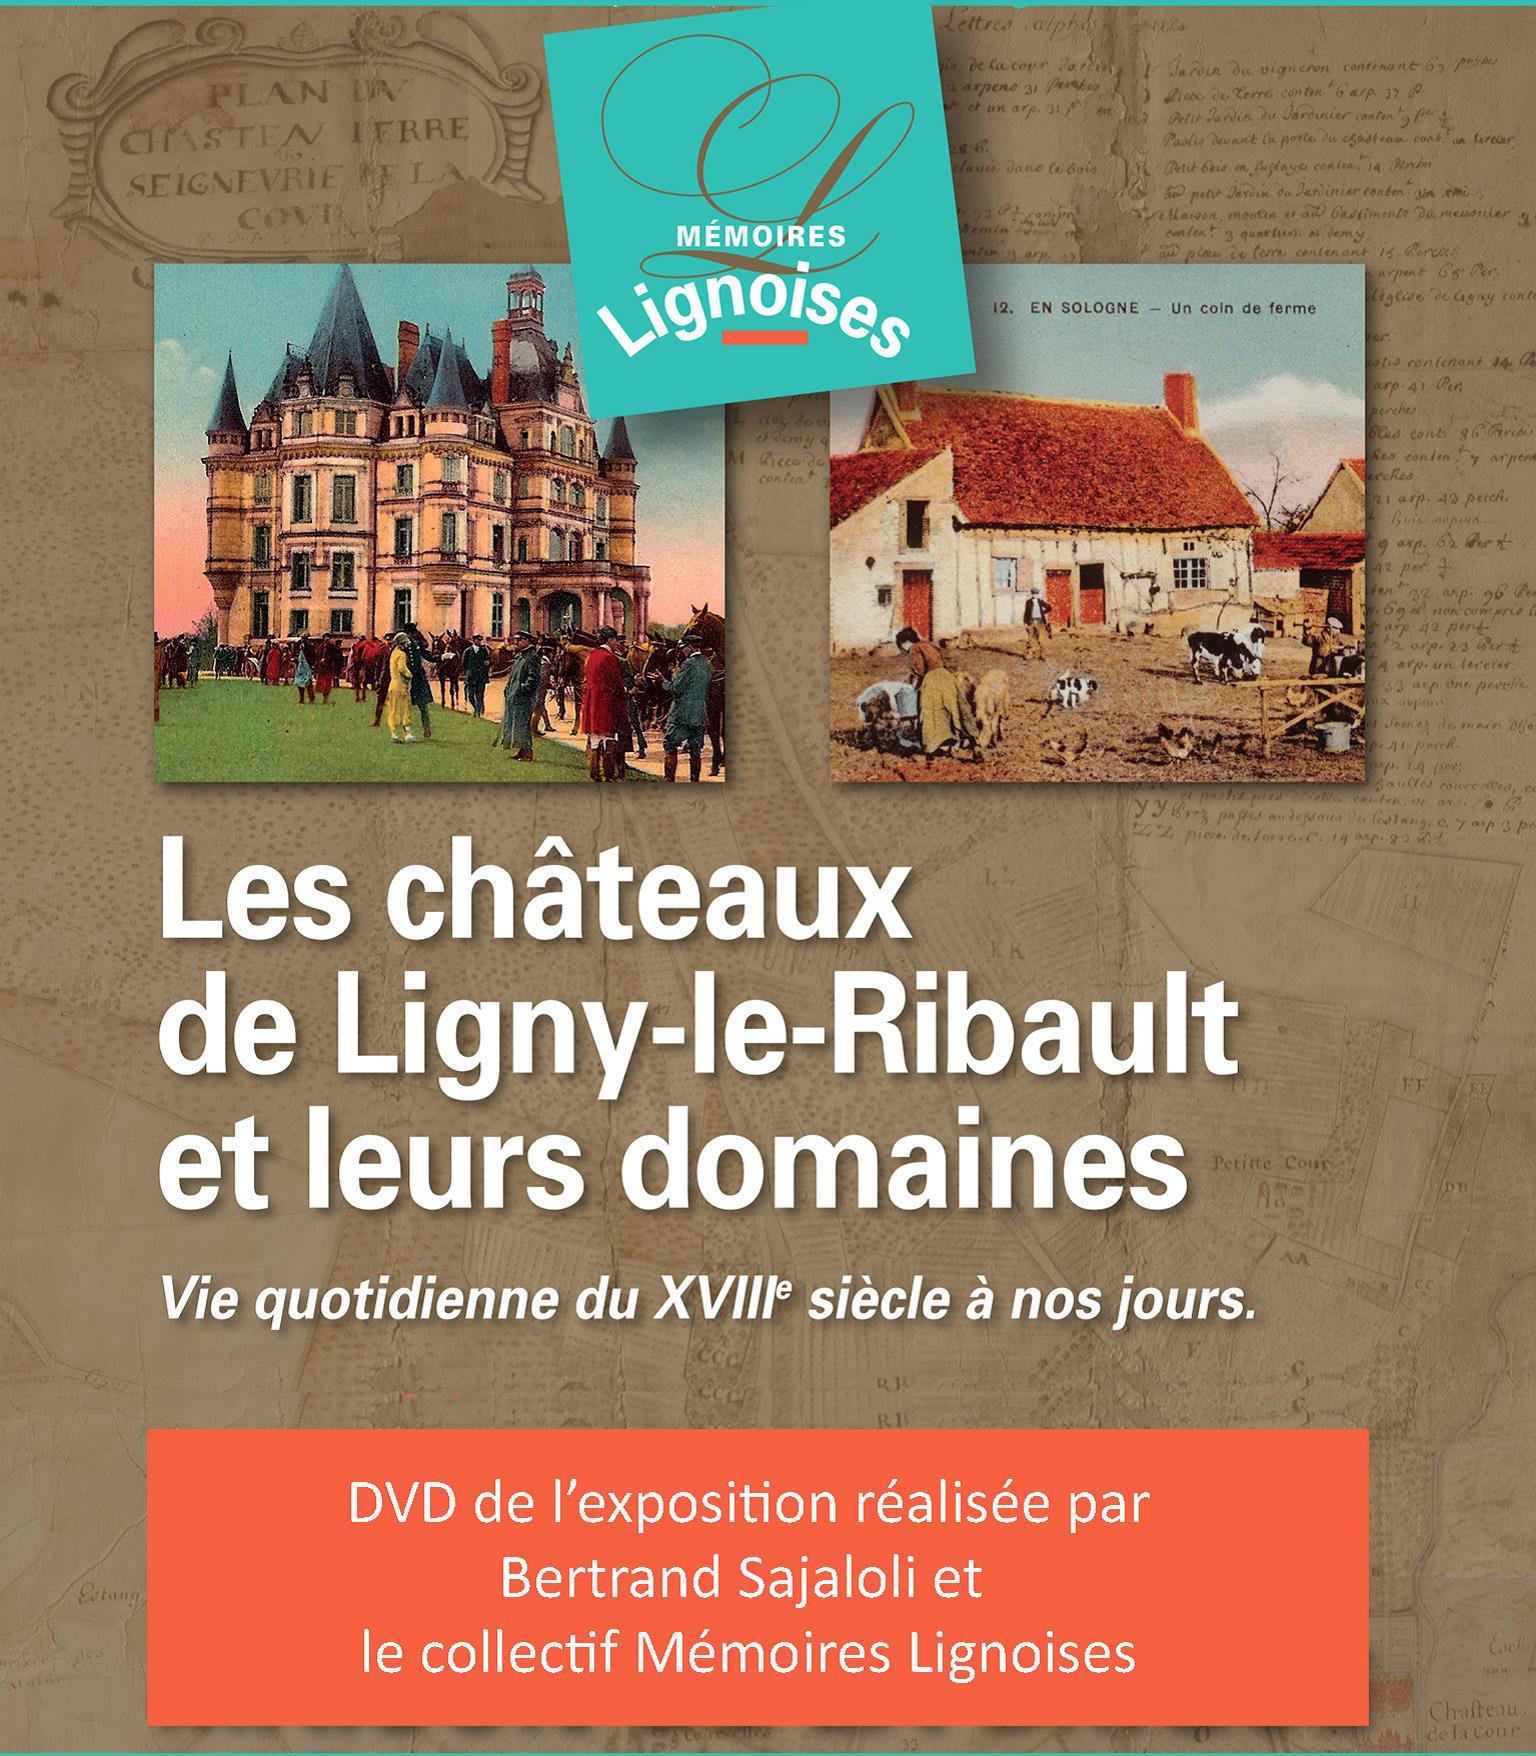 Jaquette DVD Expos chateau